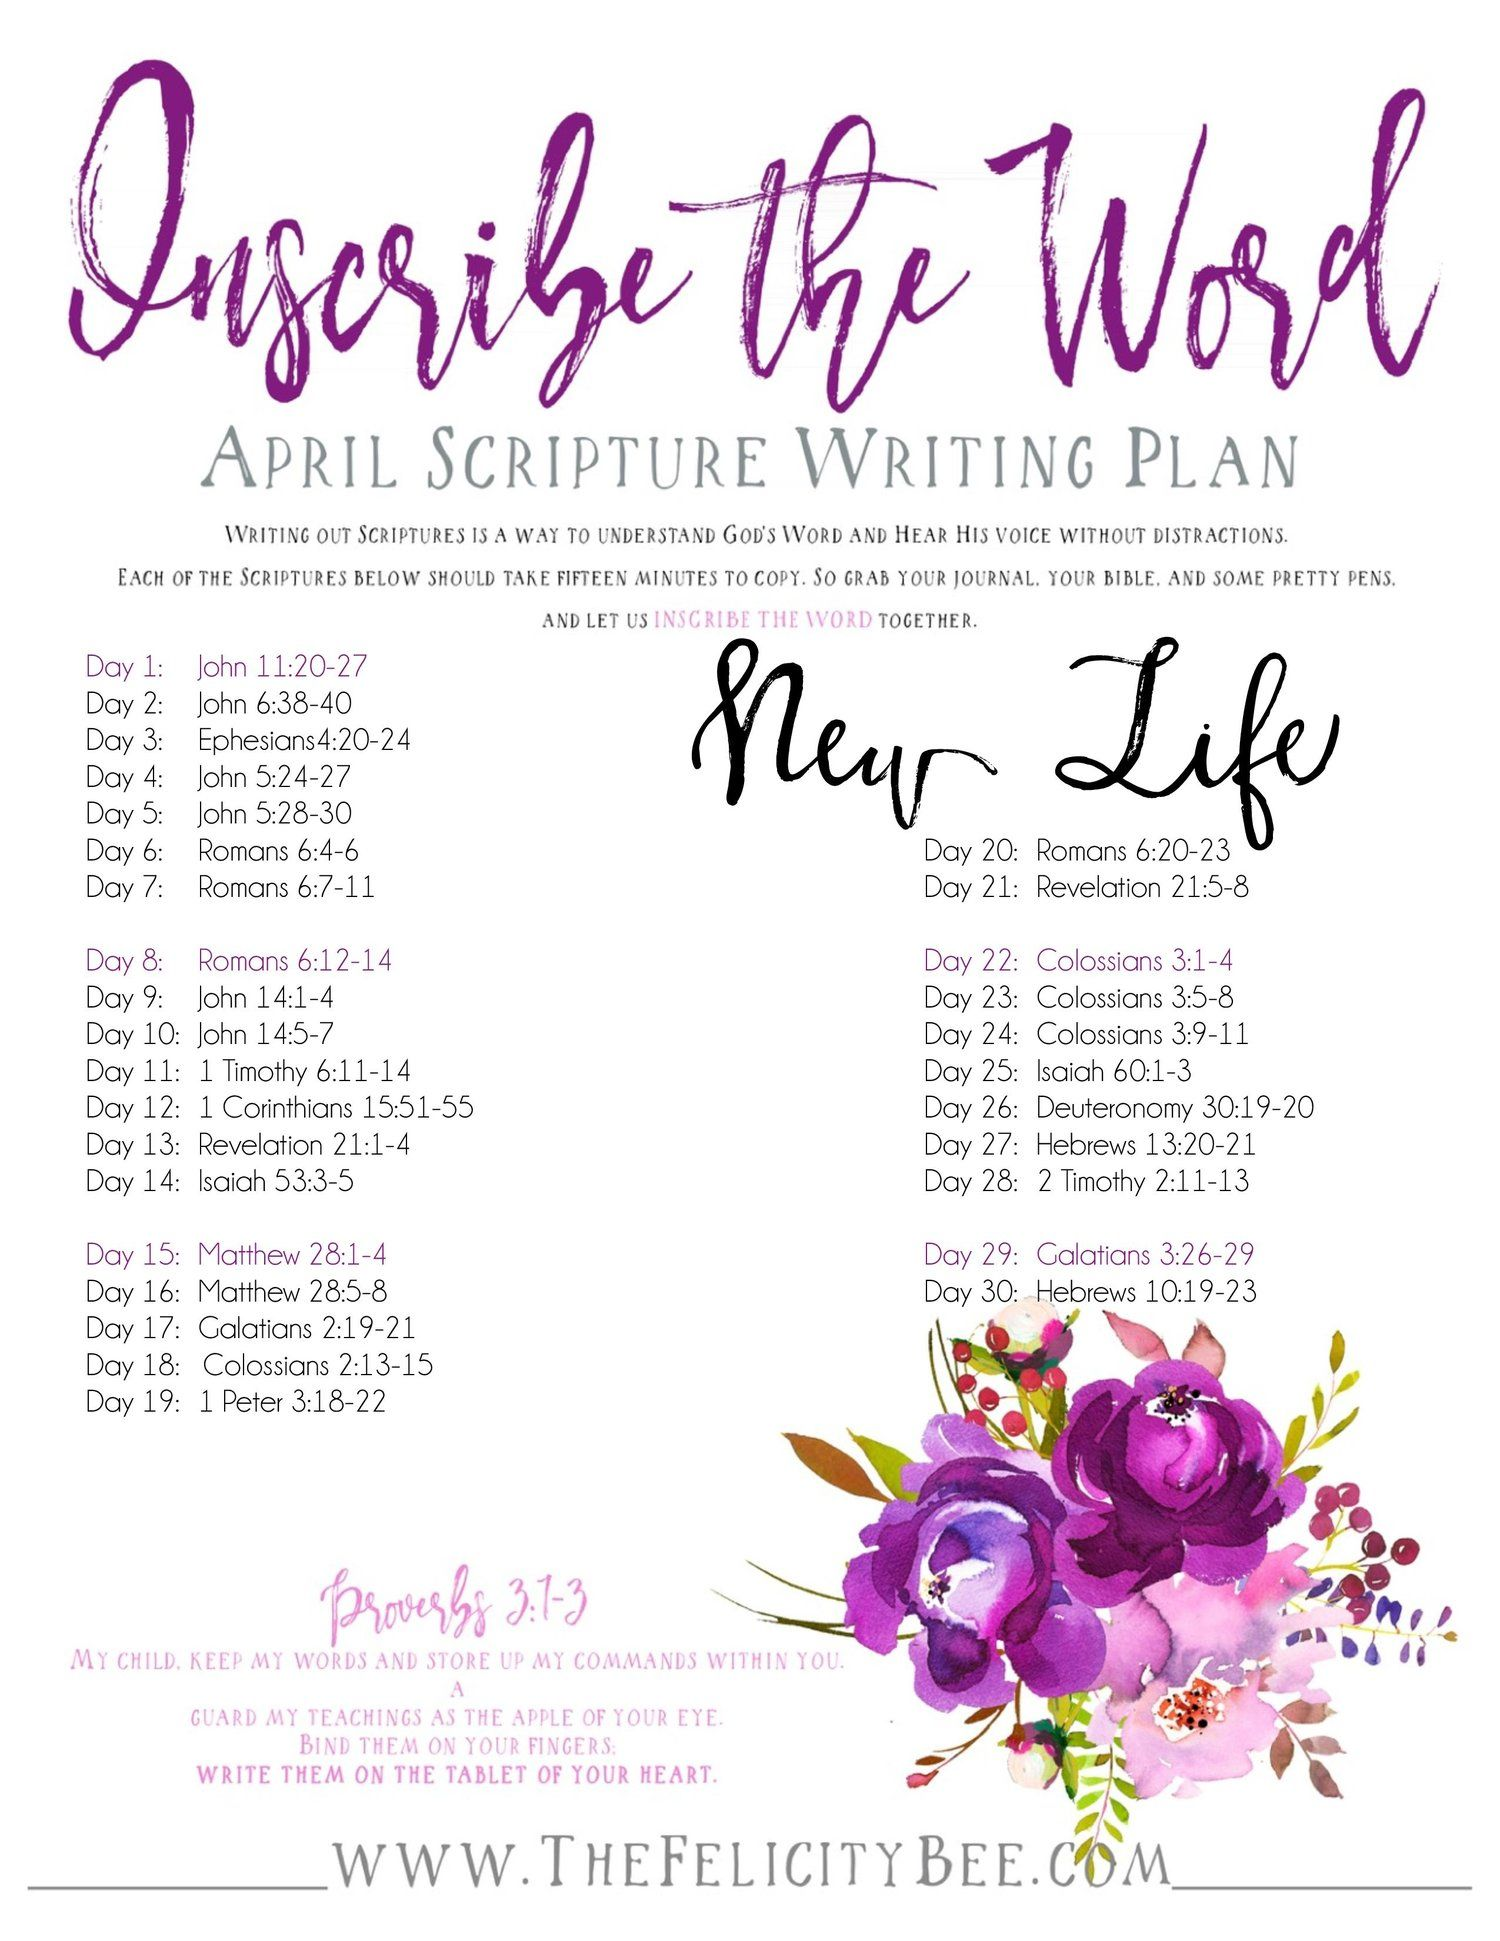 Inscribe The Word April Scripture Writing Plan